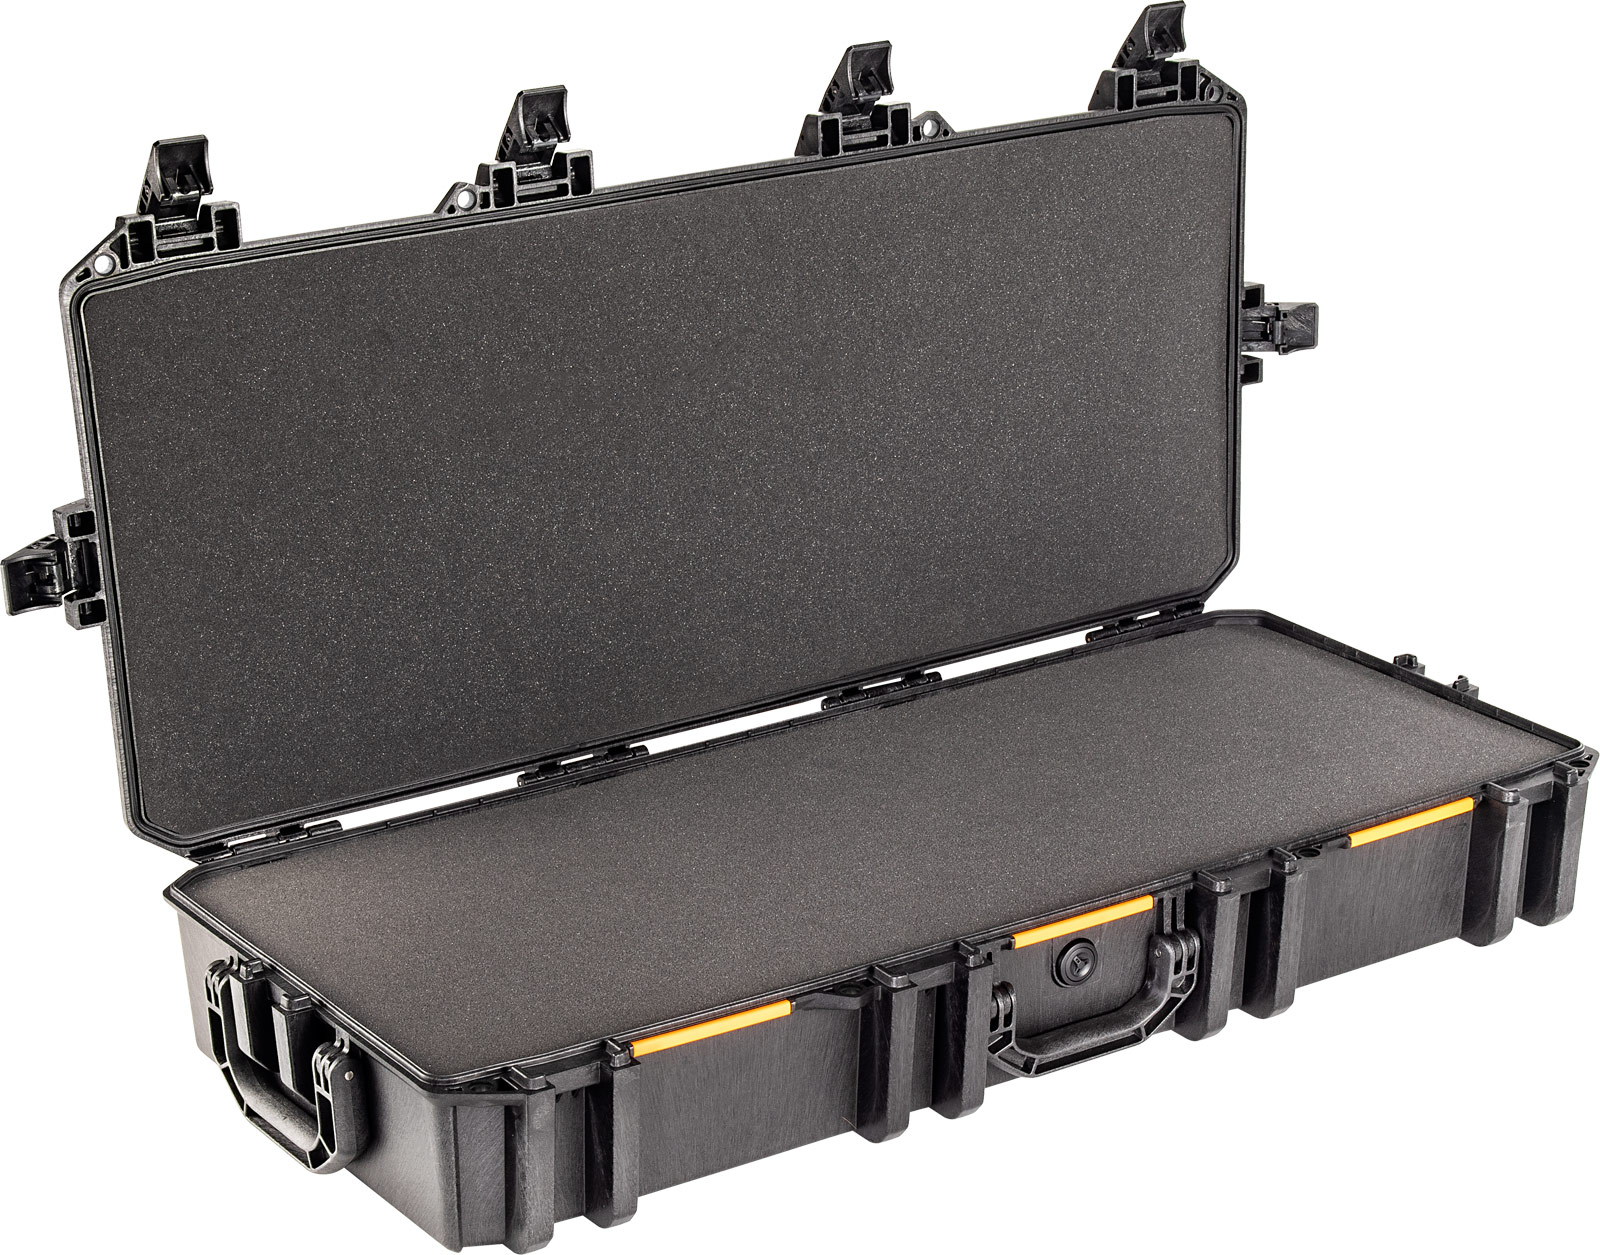 buy pelican vault v700 shop gun foam case